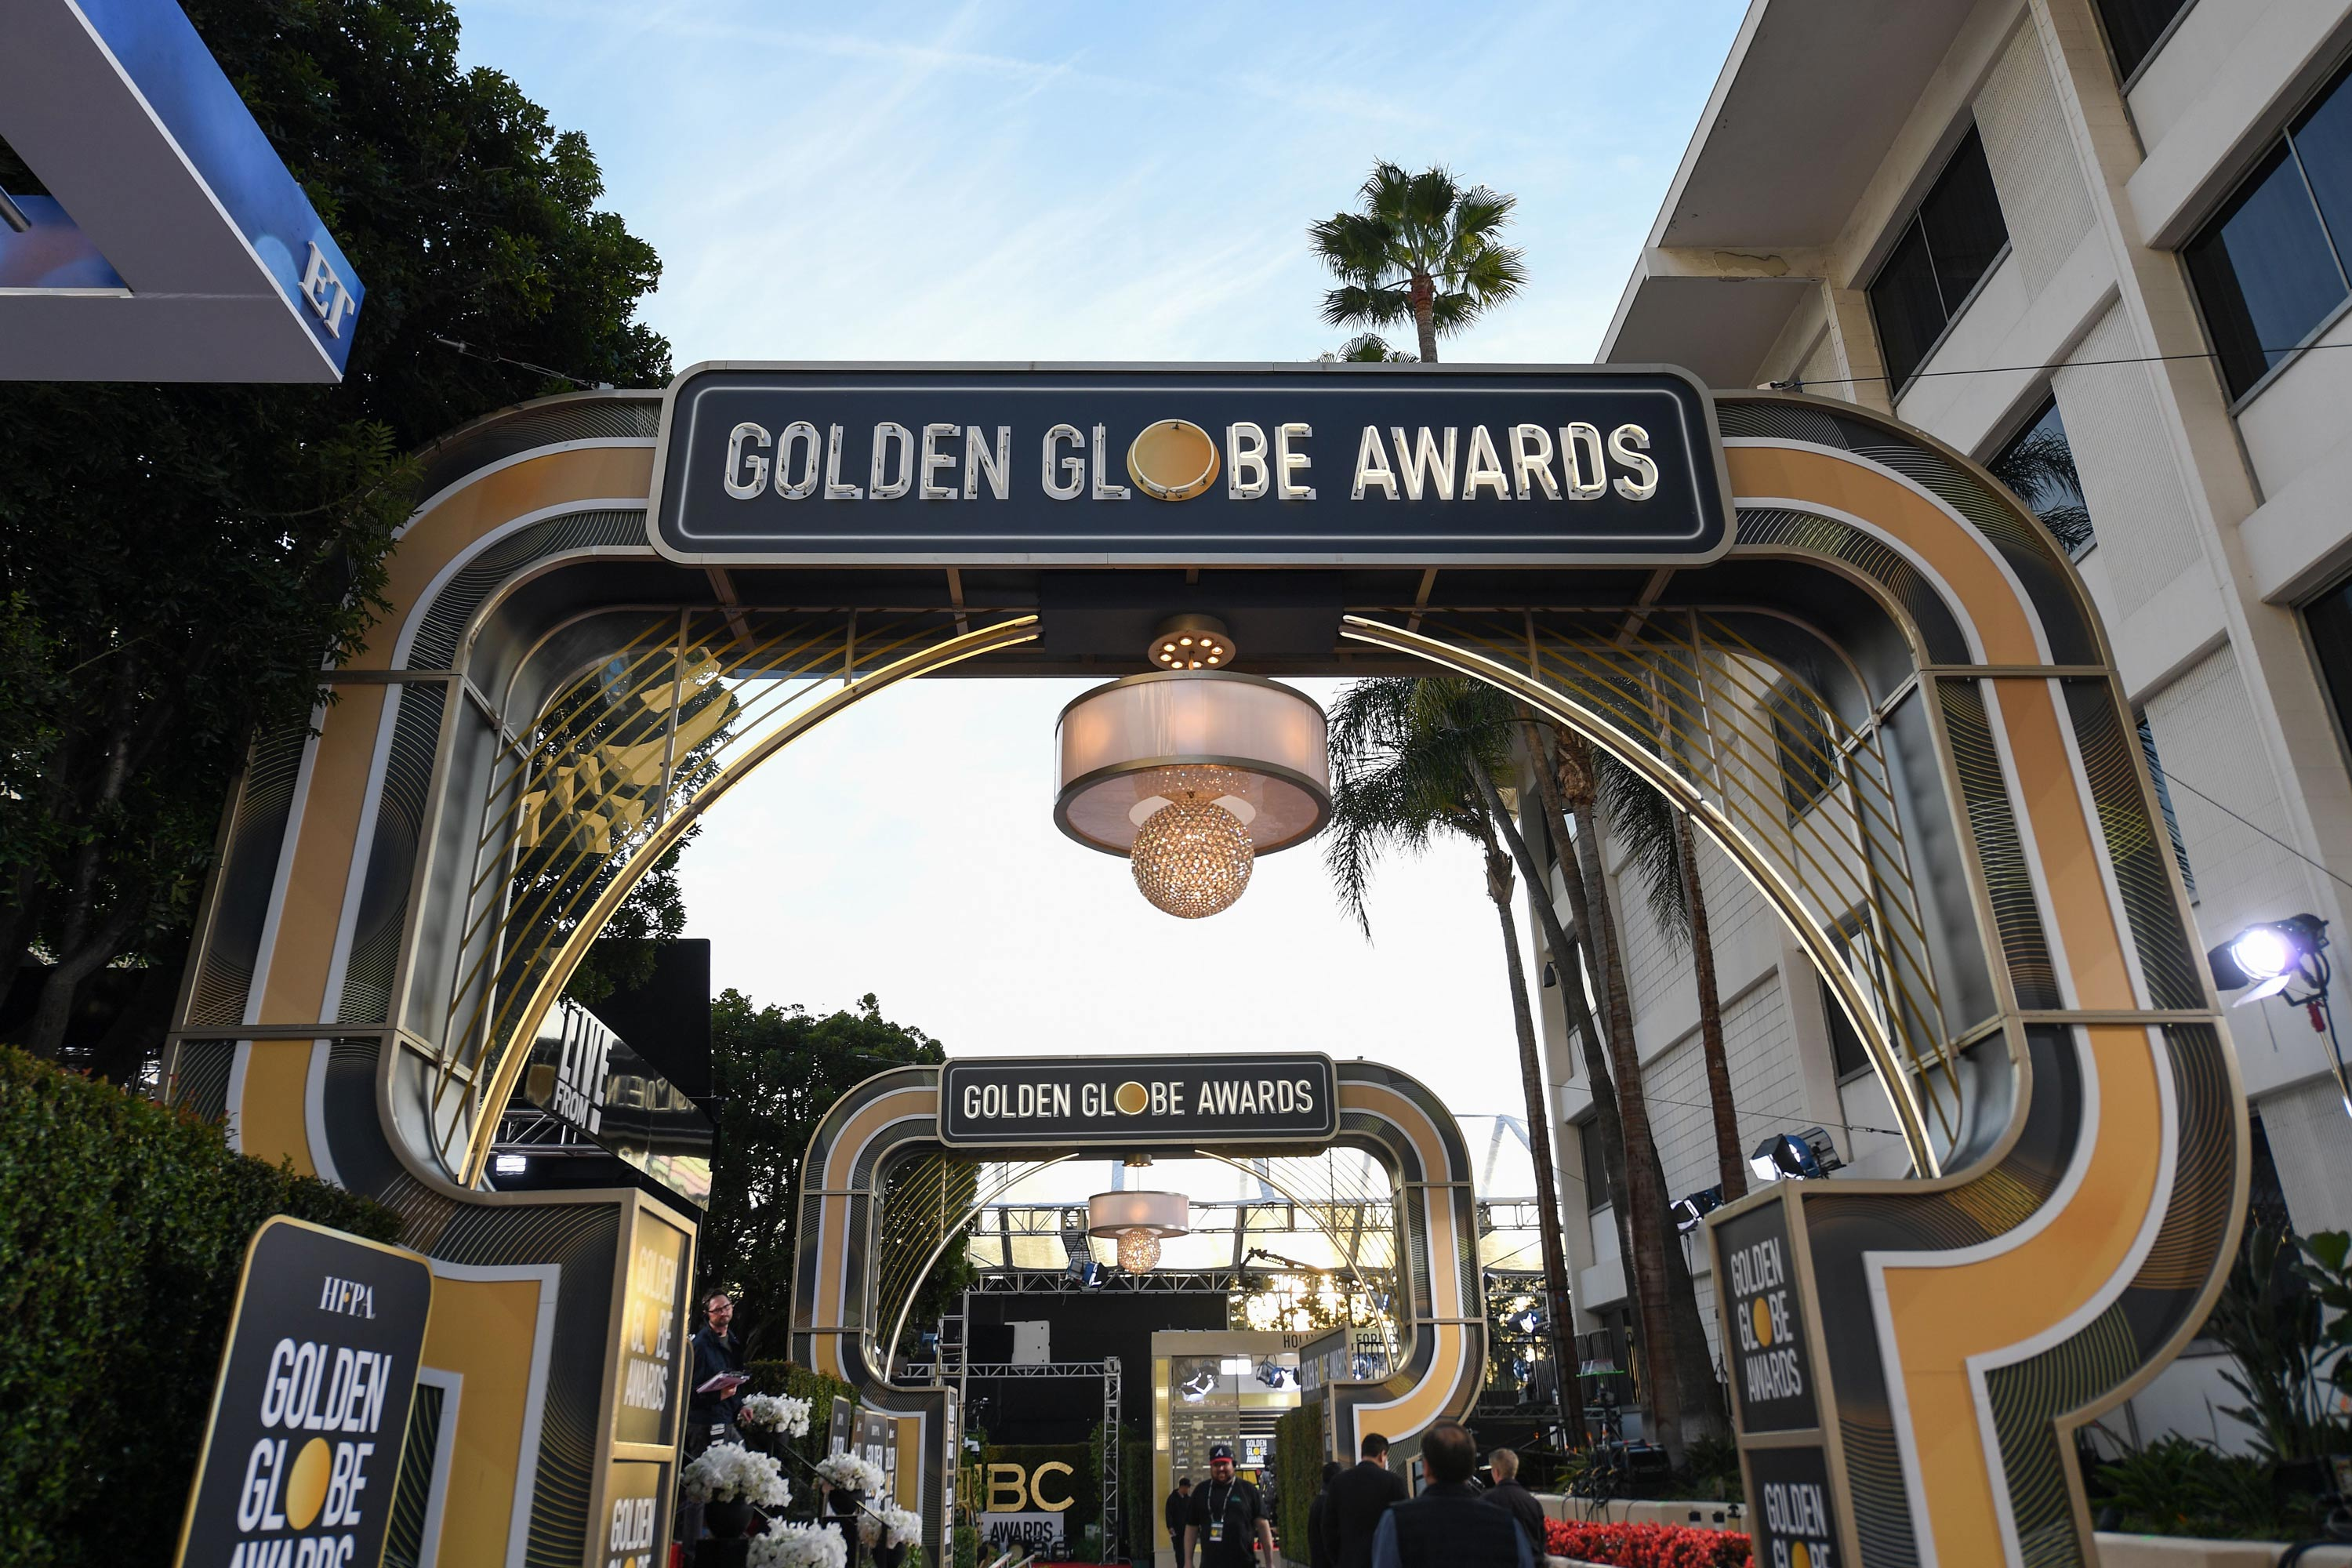 The red carpet is set up at the Golden Globes 2020 at The Beverly Hilton, in Beverly Hills, California, on January 4, 2020.